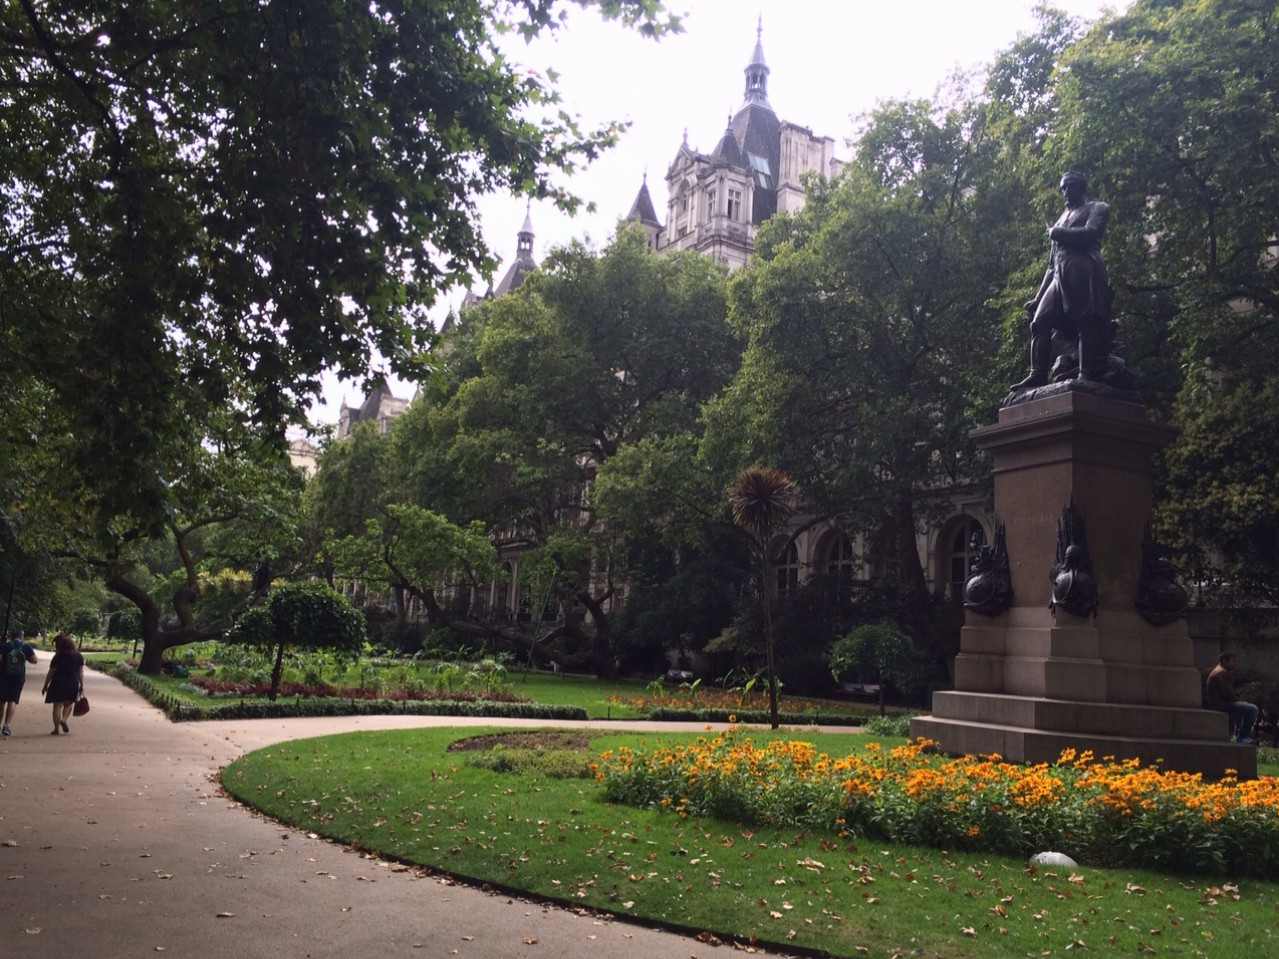 There are over 100 green spaces in London.  This is Whitehall Gardens.